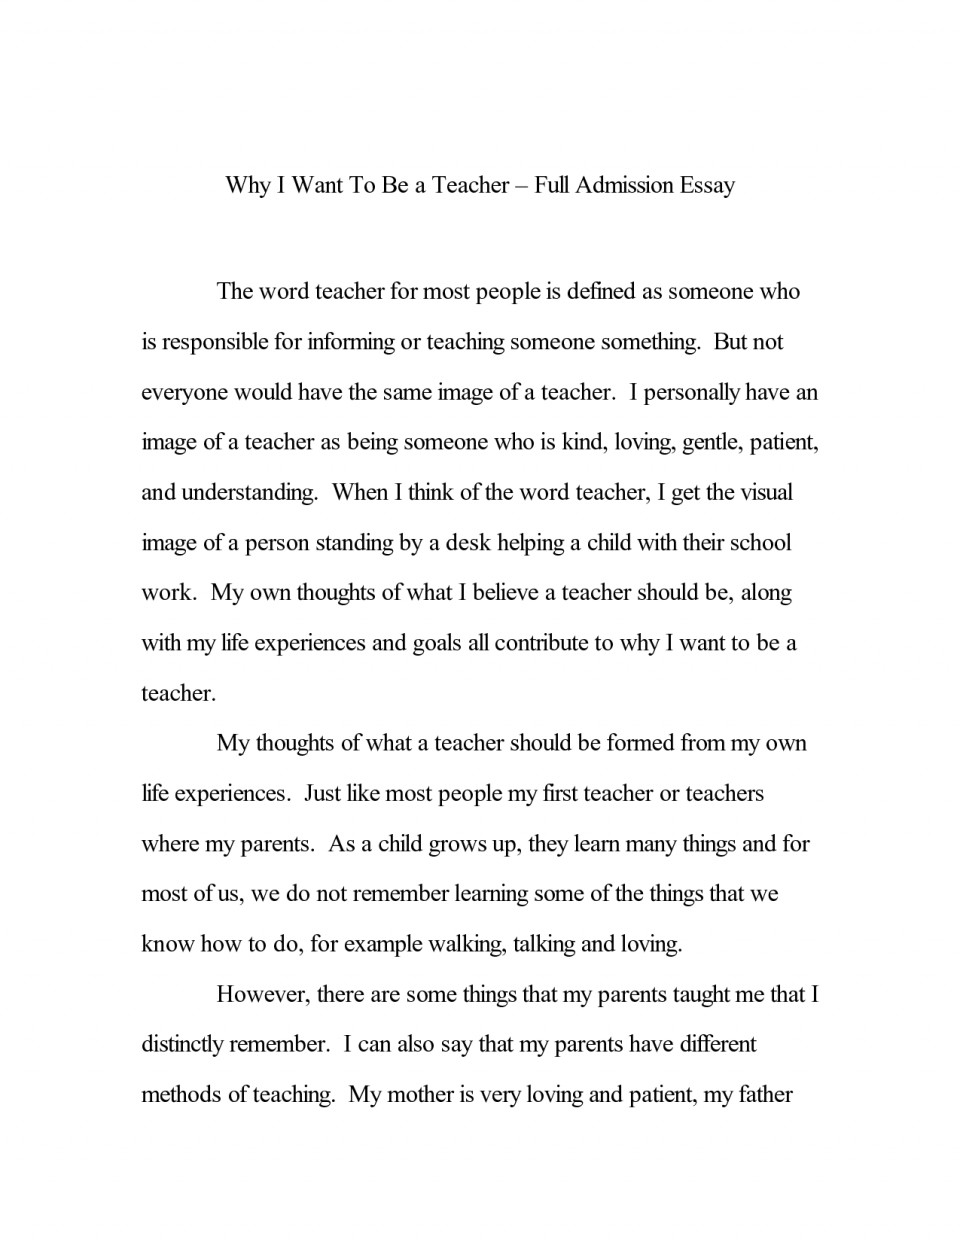 004 Writing College Application Essay Rare A How To Write Term Paper Outline Topics On Examples 960